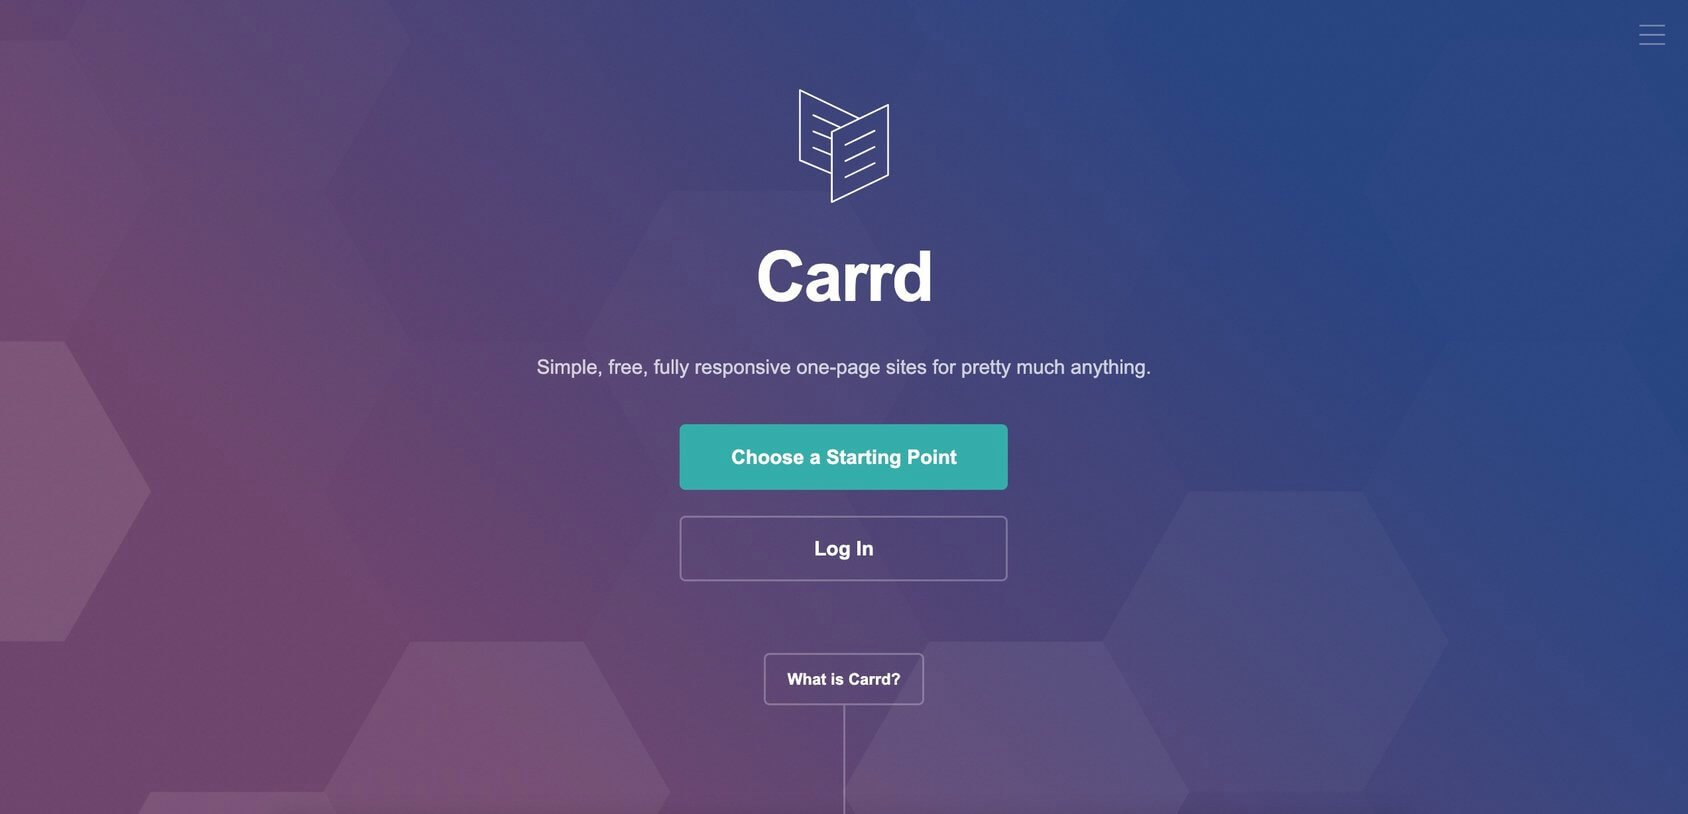 Carrd homepage